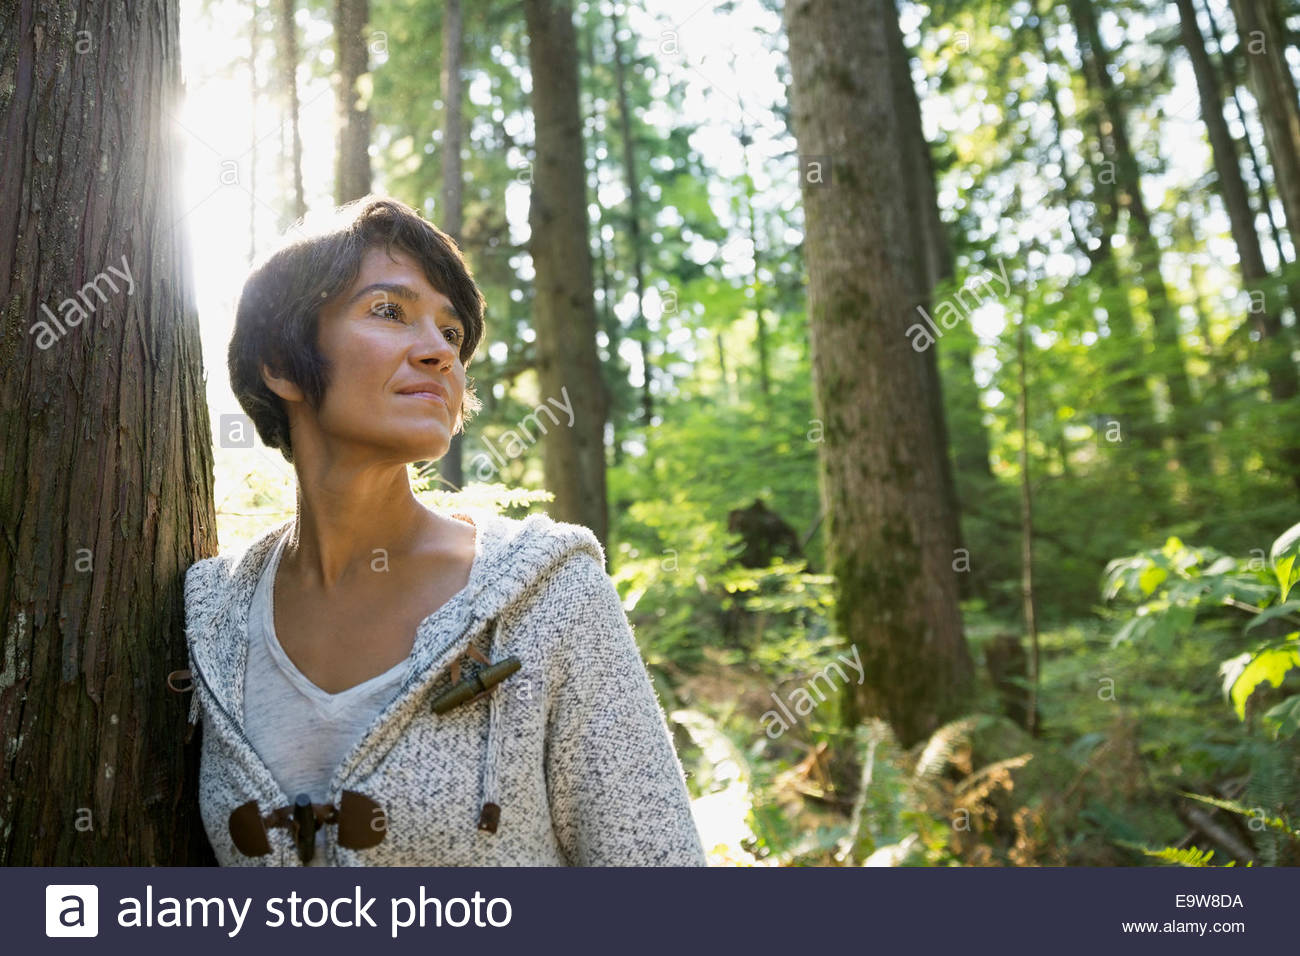 Serene woman leaning against tree in woods - Stock Image